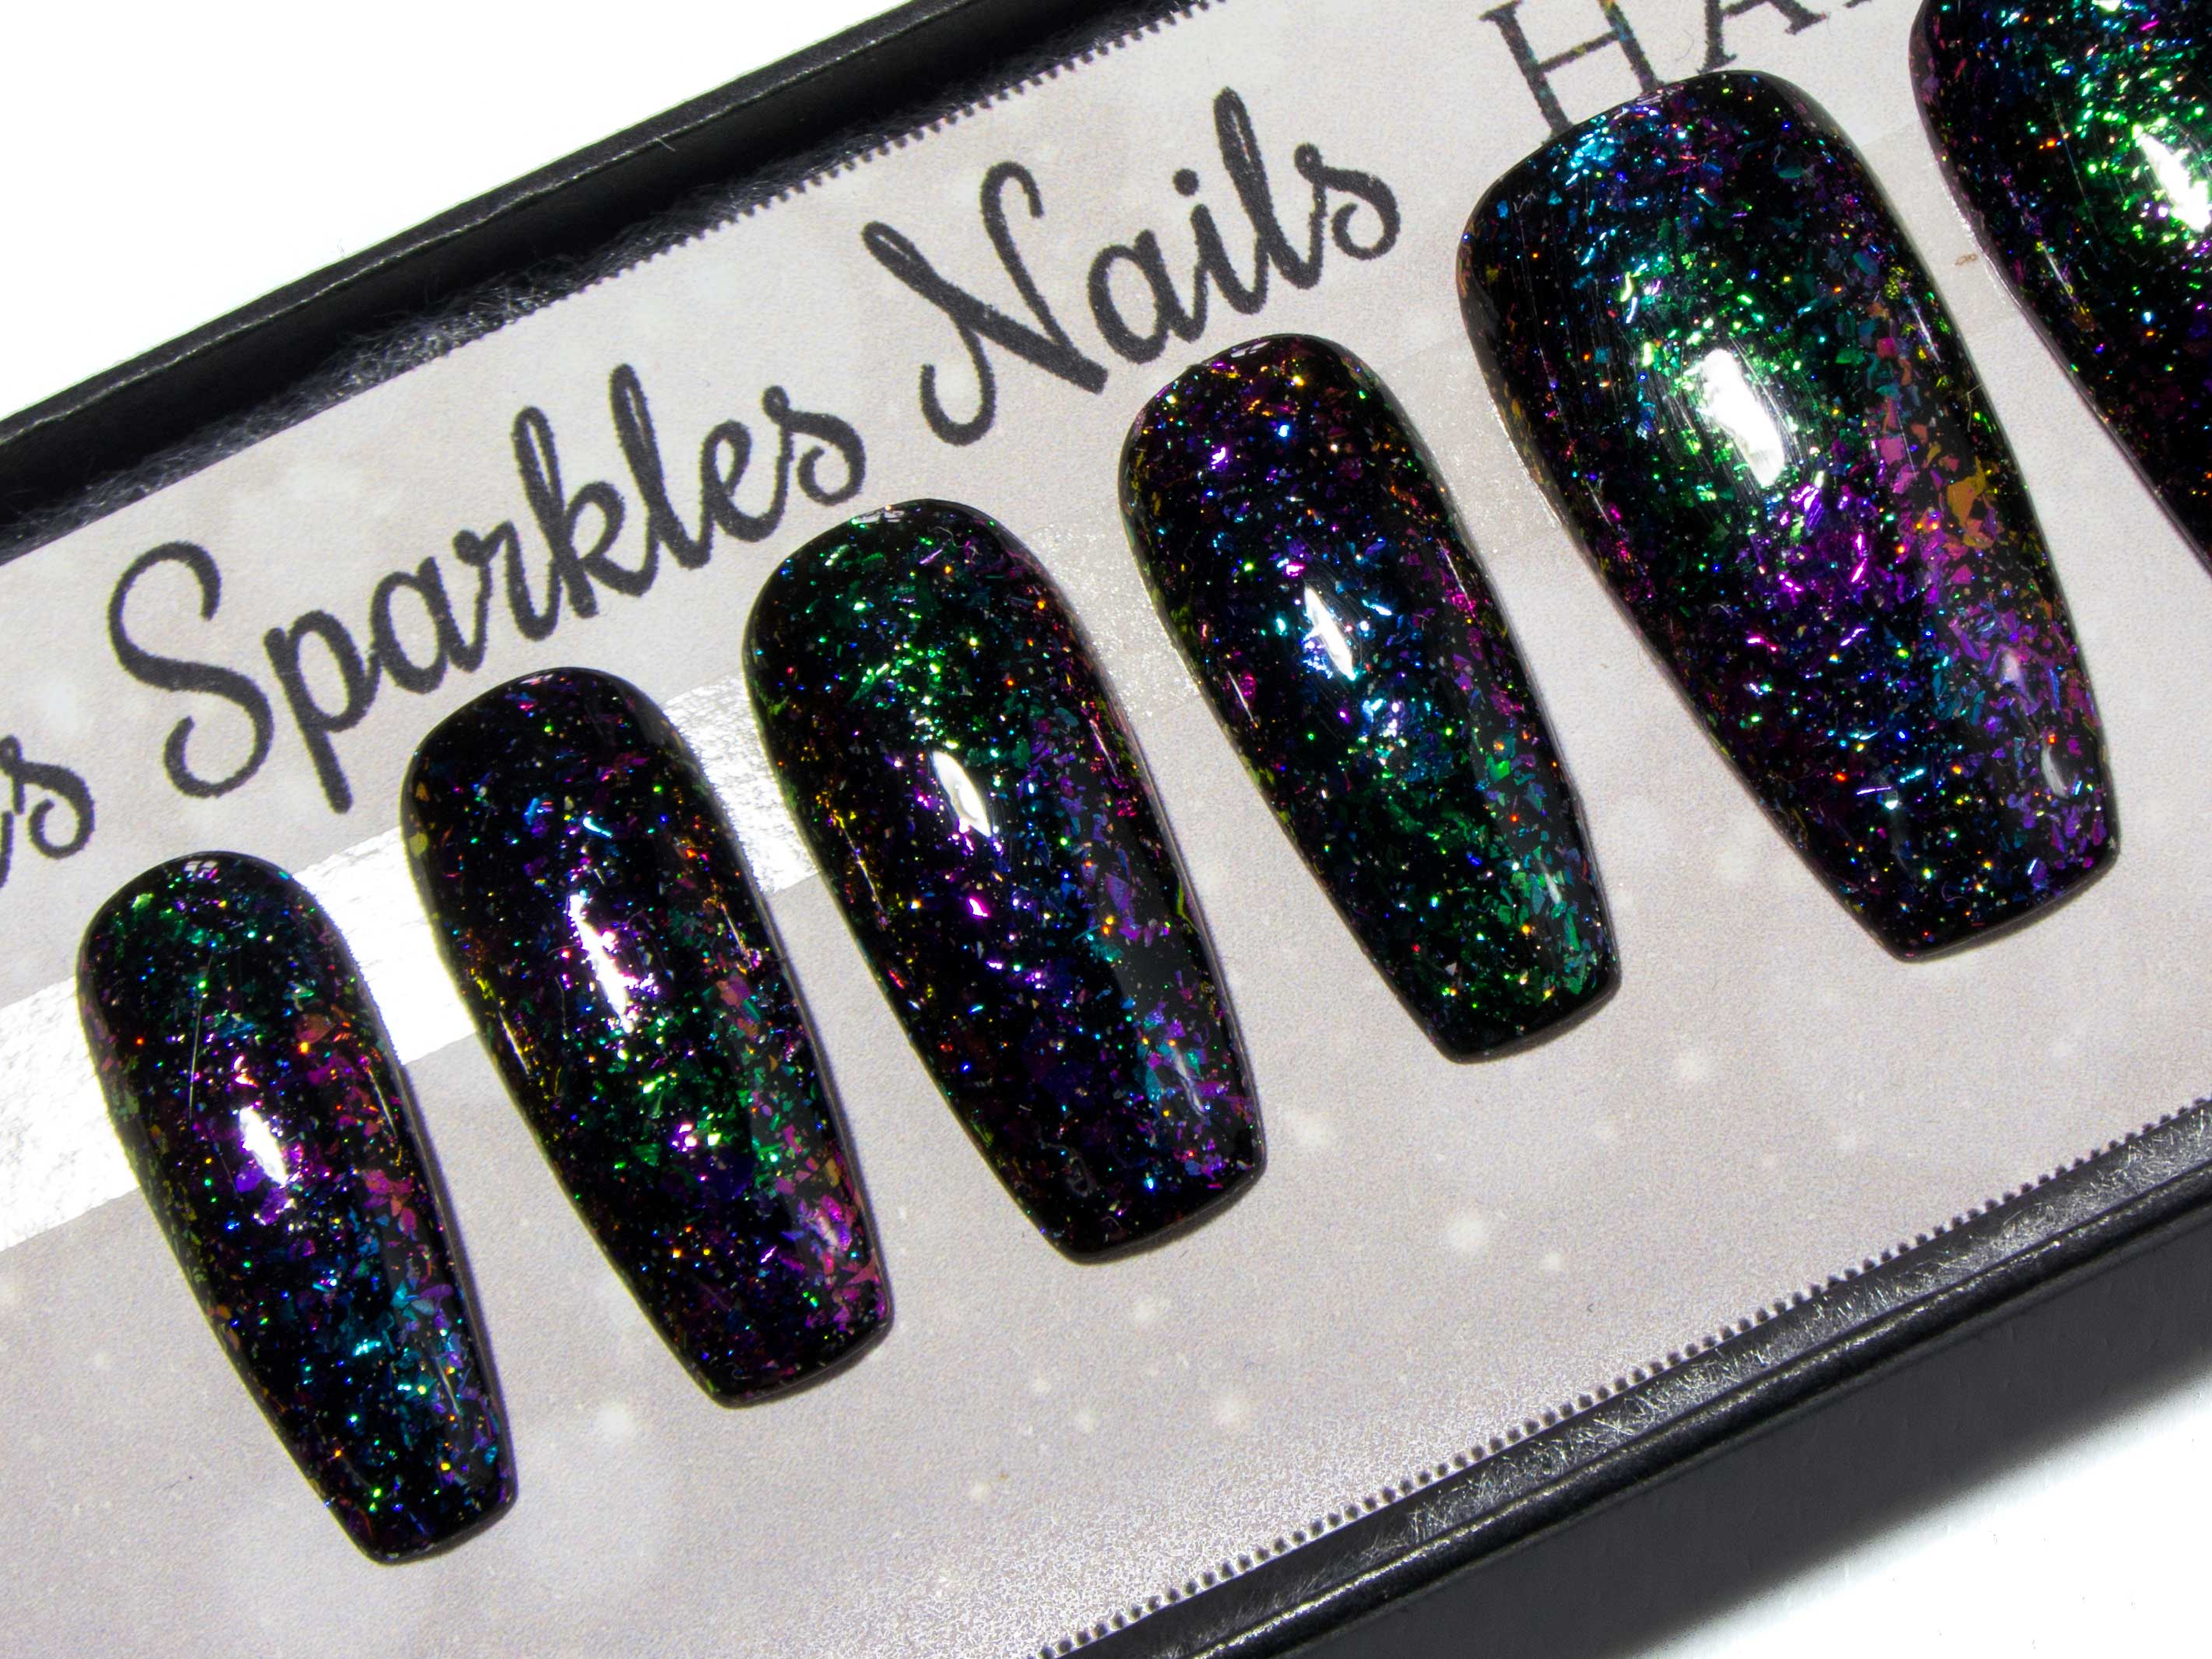 """Intergalactic"" Mixed Colour-Shifting Flakies & Holo Sparkle Press On Nails"